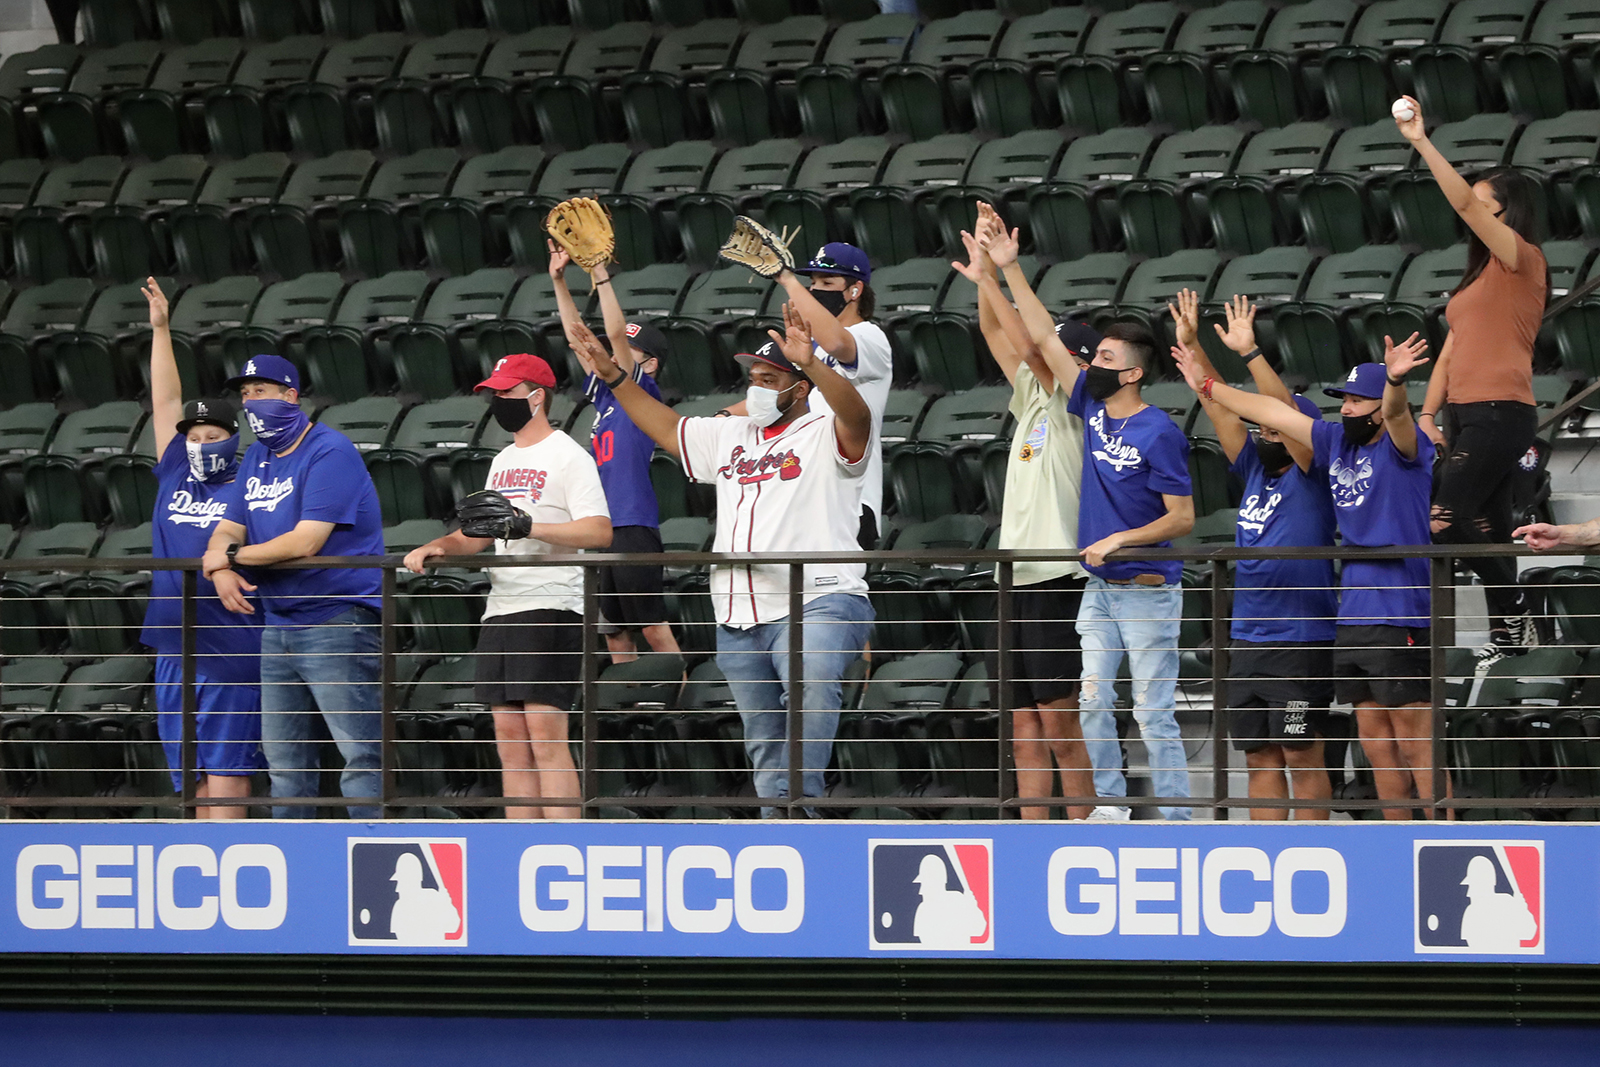 Atlanta Braves fans and Los Angeles Dodgers fans cheer during batting practice before Game 1 for the best-of-seven National League Championship Series at Globe Life Field in Arlington, Texas, on October 12.